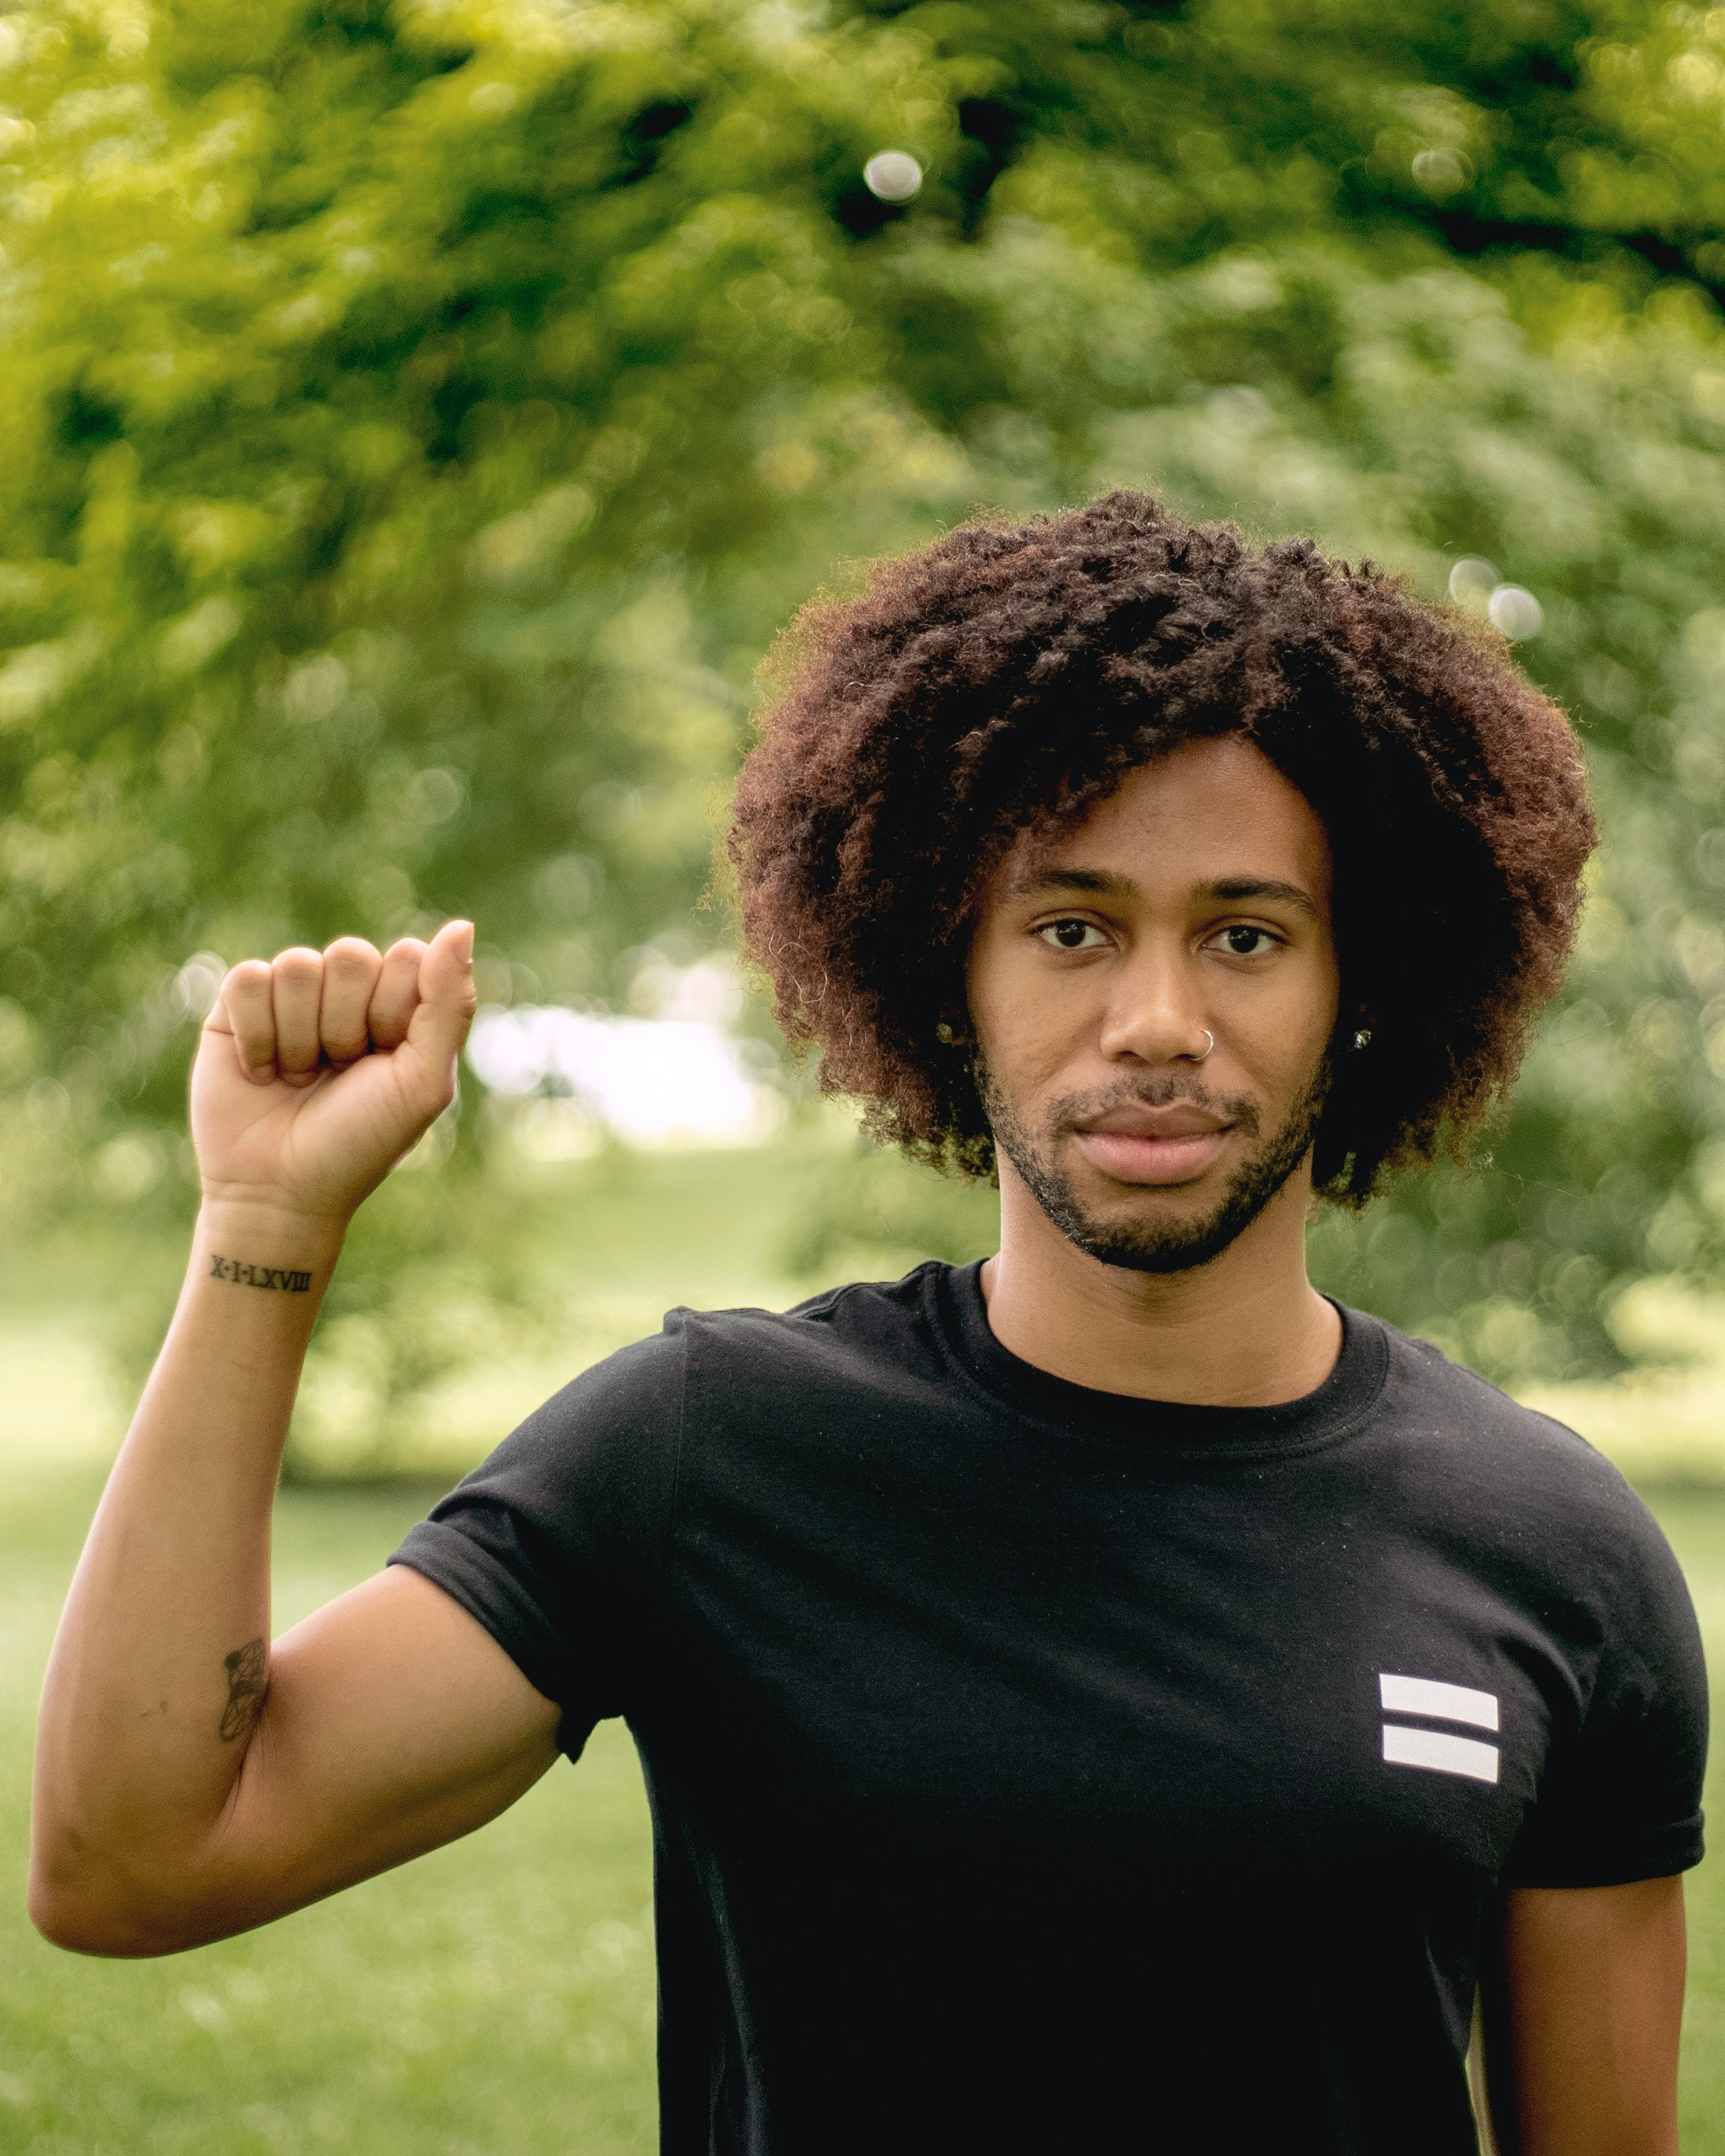 A black man raising his fist in solidarity with black lives matter